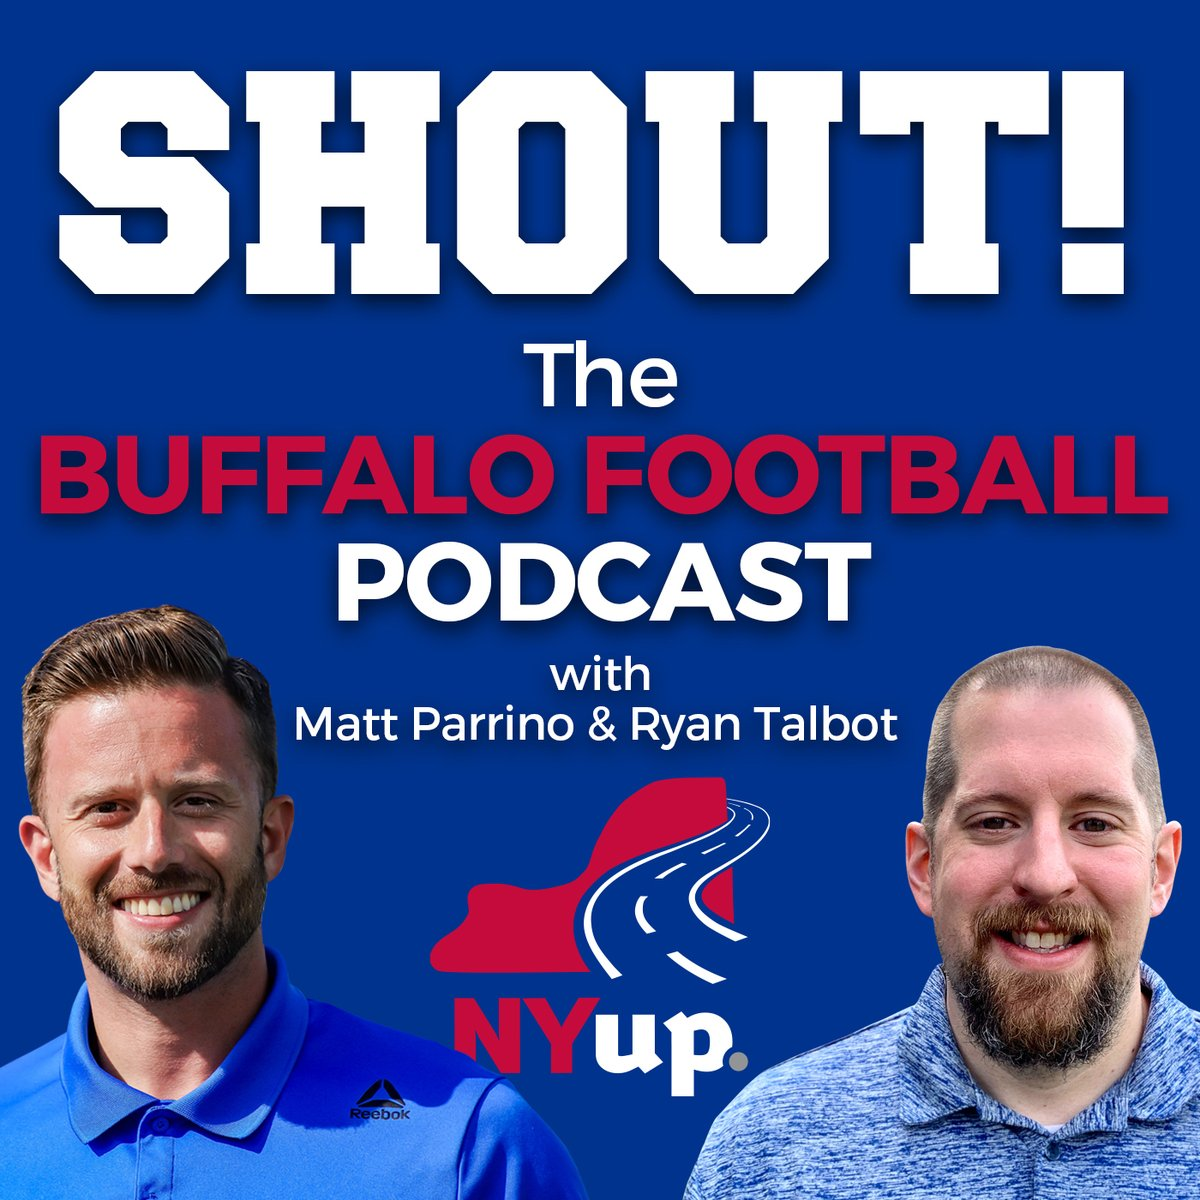 Awesome show tonight, #BillsMafia! Talkin' salary cap less than a month out from the start of free agency.  We'll chat with @spotrac from 7:30-8 & then @GregTompsett from 8-8:30. Can't wait. DM any specific salary cap ?s  Watch on YouTube ➡️